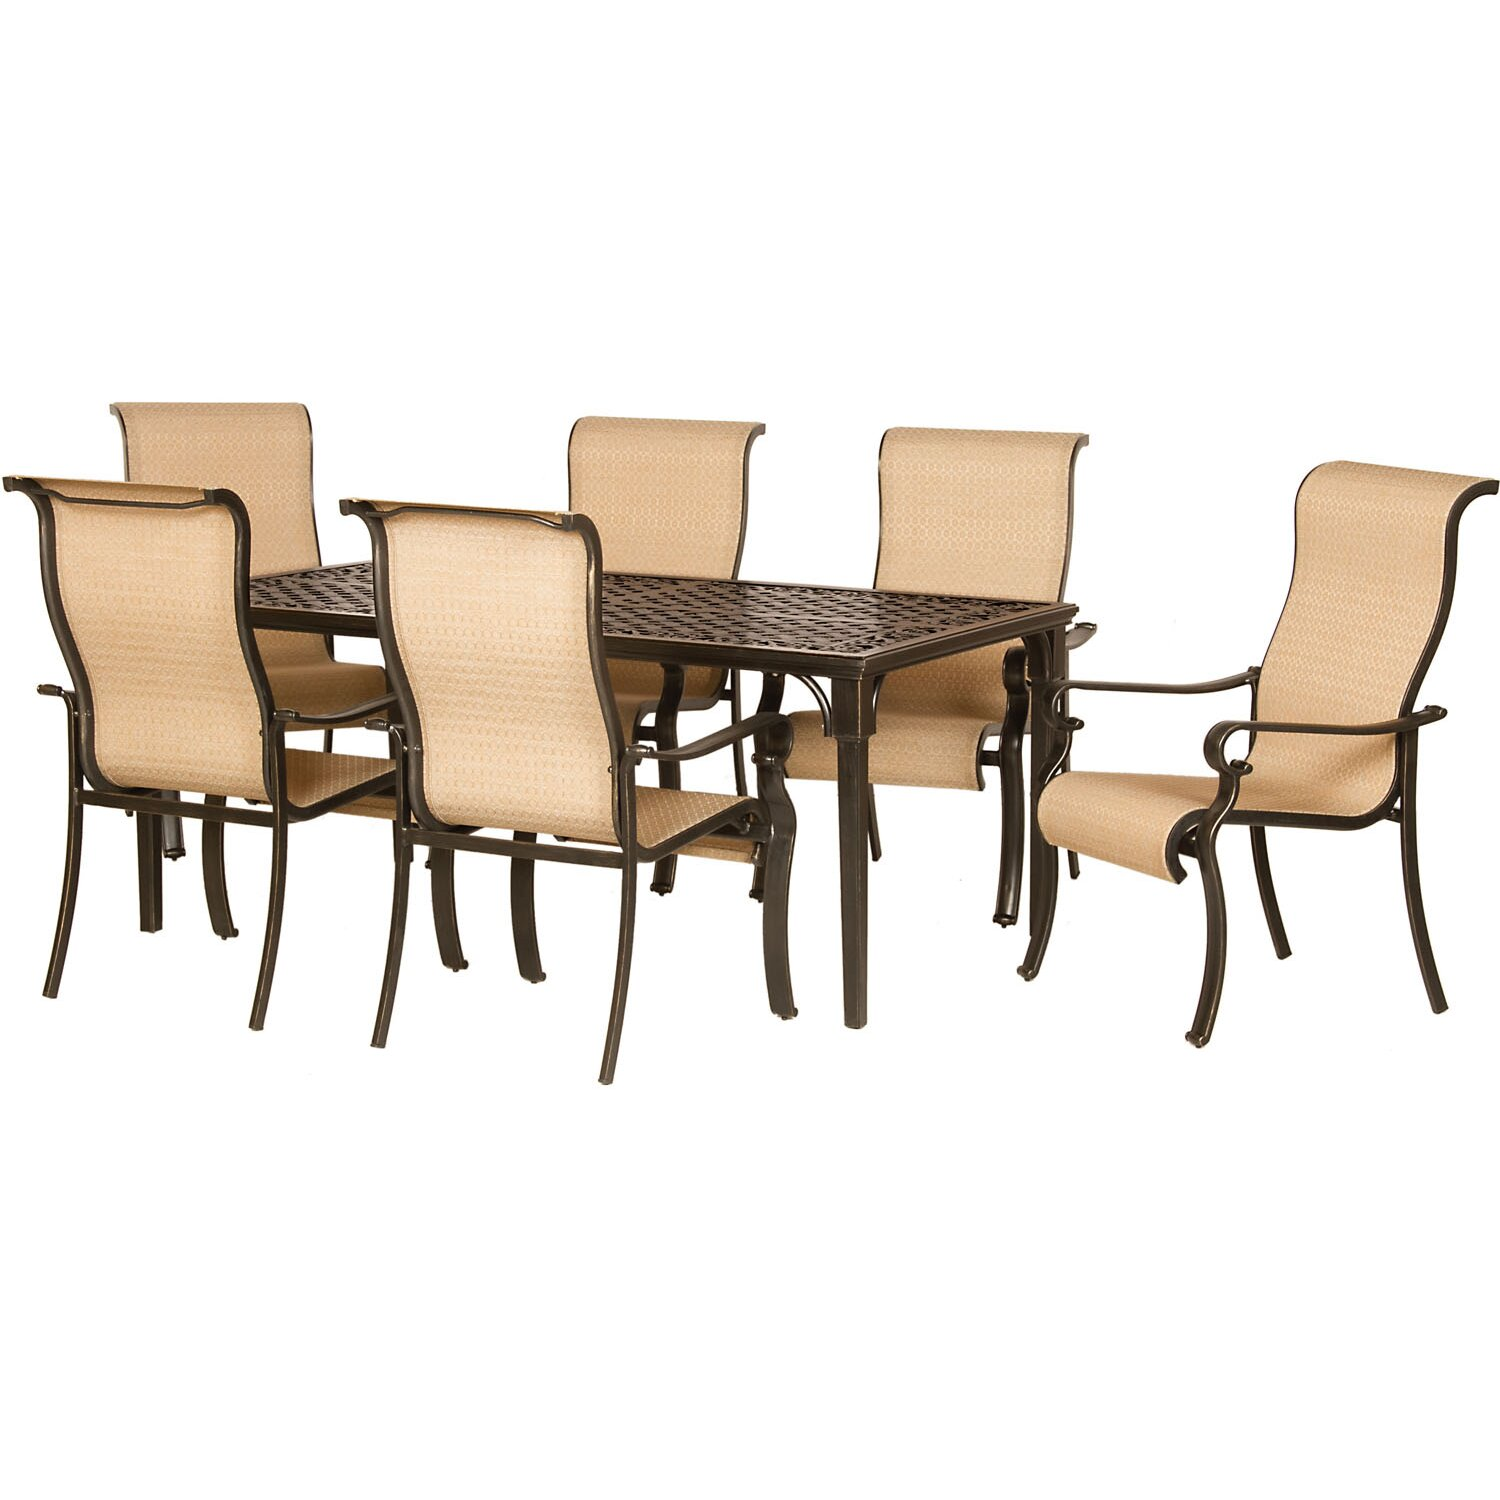 Hanover brigantine 7 piece outdoor dining set reviews for 7 piece dining set